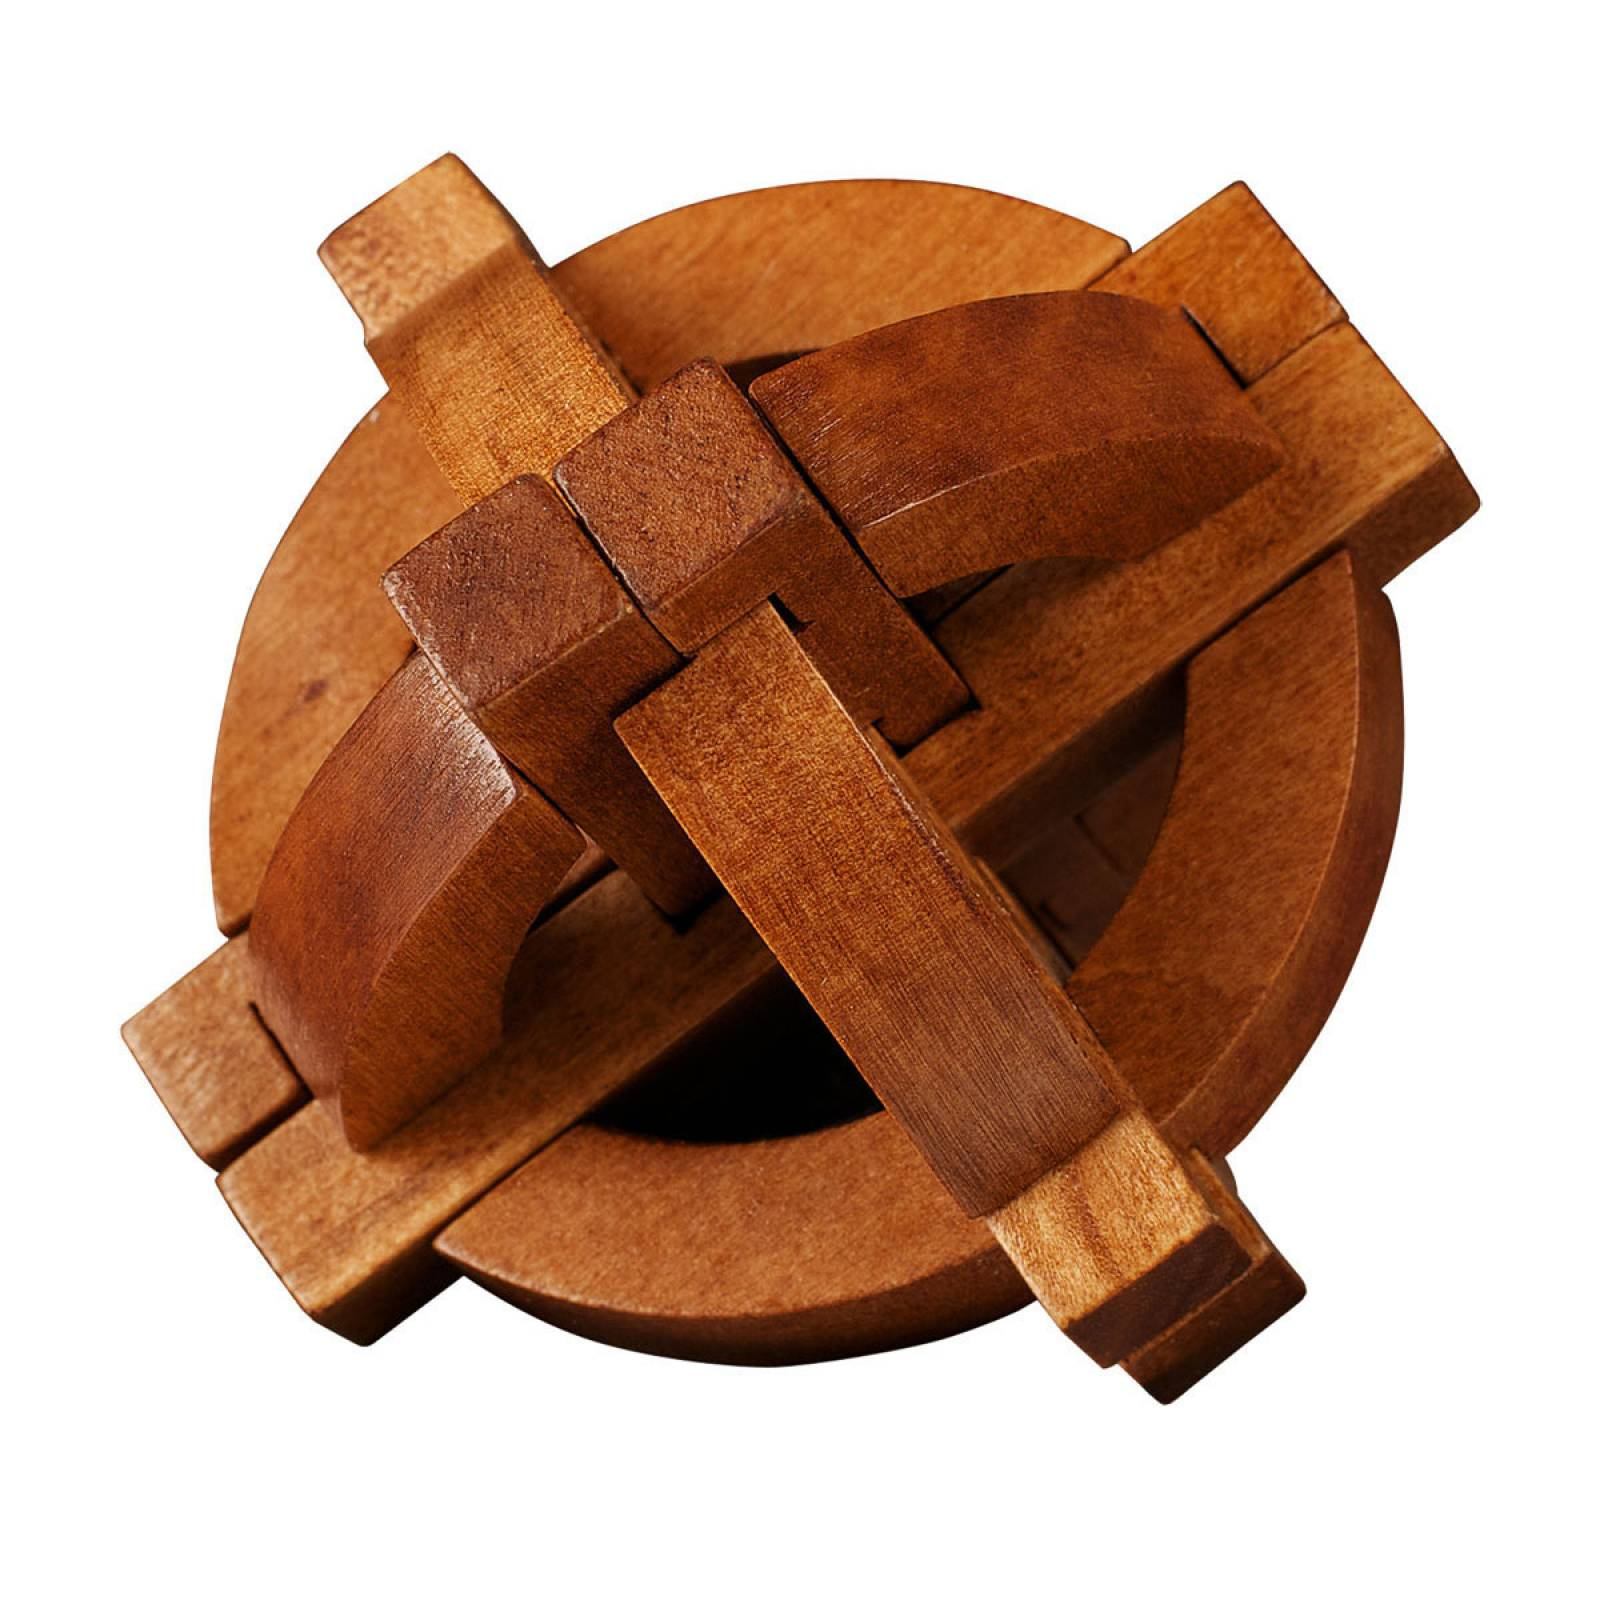 Great Minds Set of 3 Wooden Puzzles - (Halley, Galileo & Kepler) thumbnails